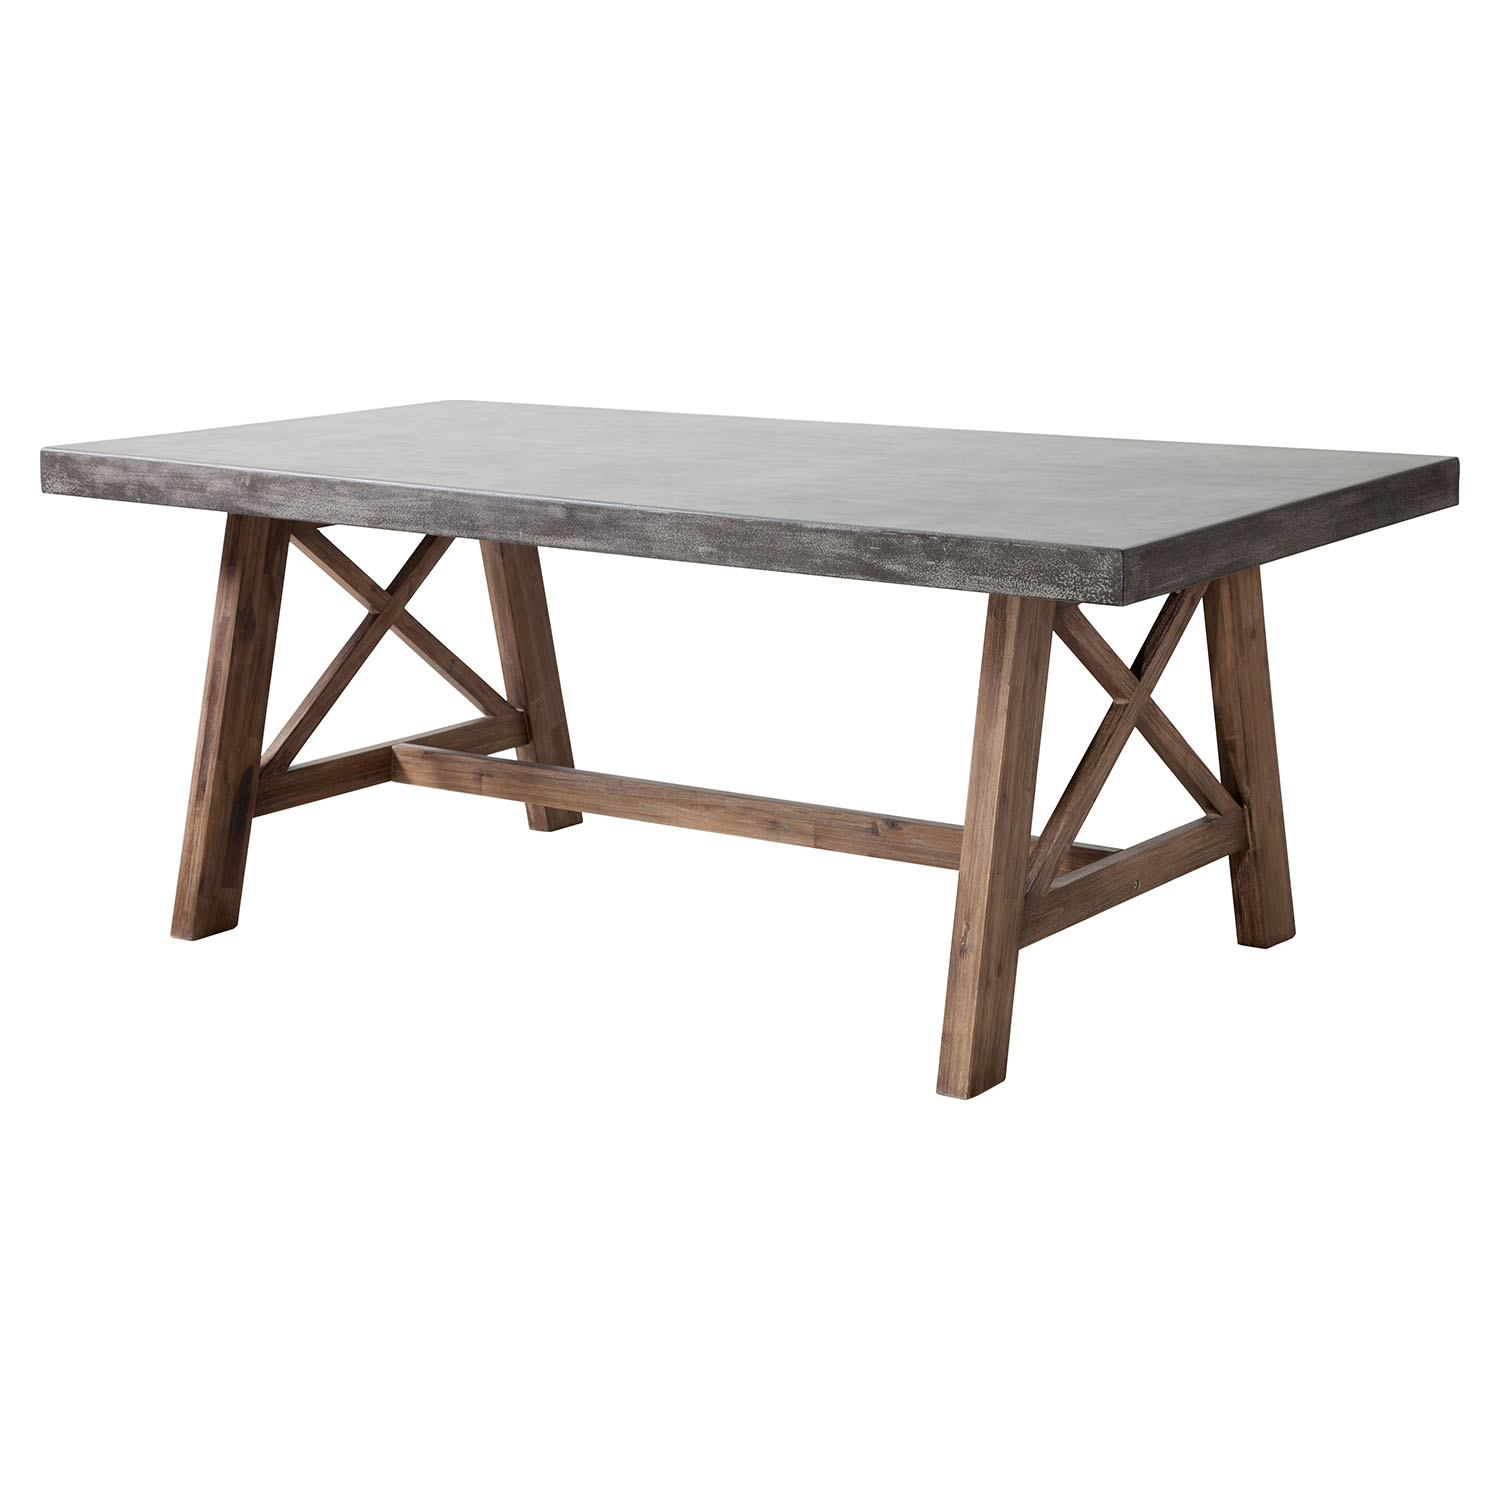 Ford Rectangular Dining Table - Cement and Natural - ZM-703594